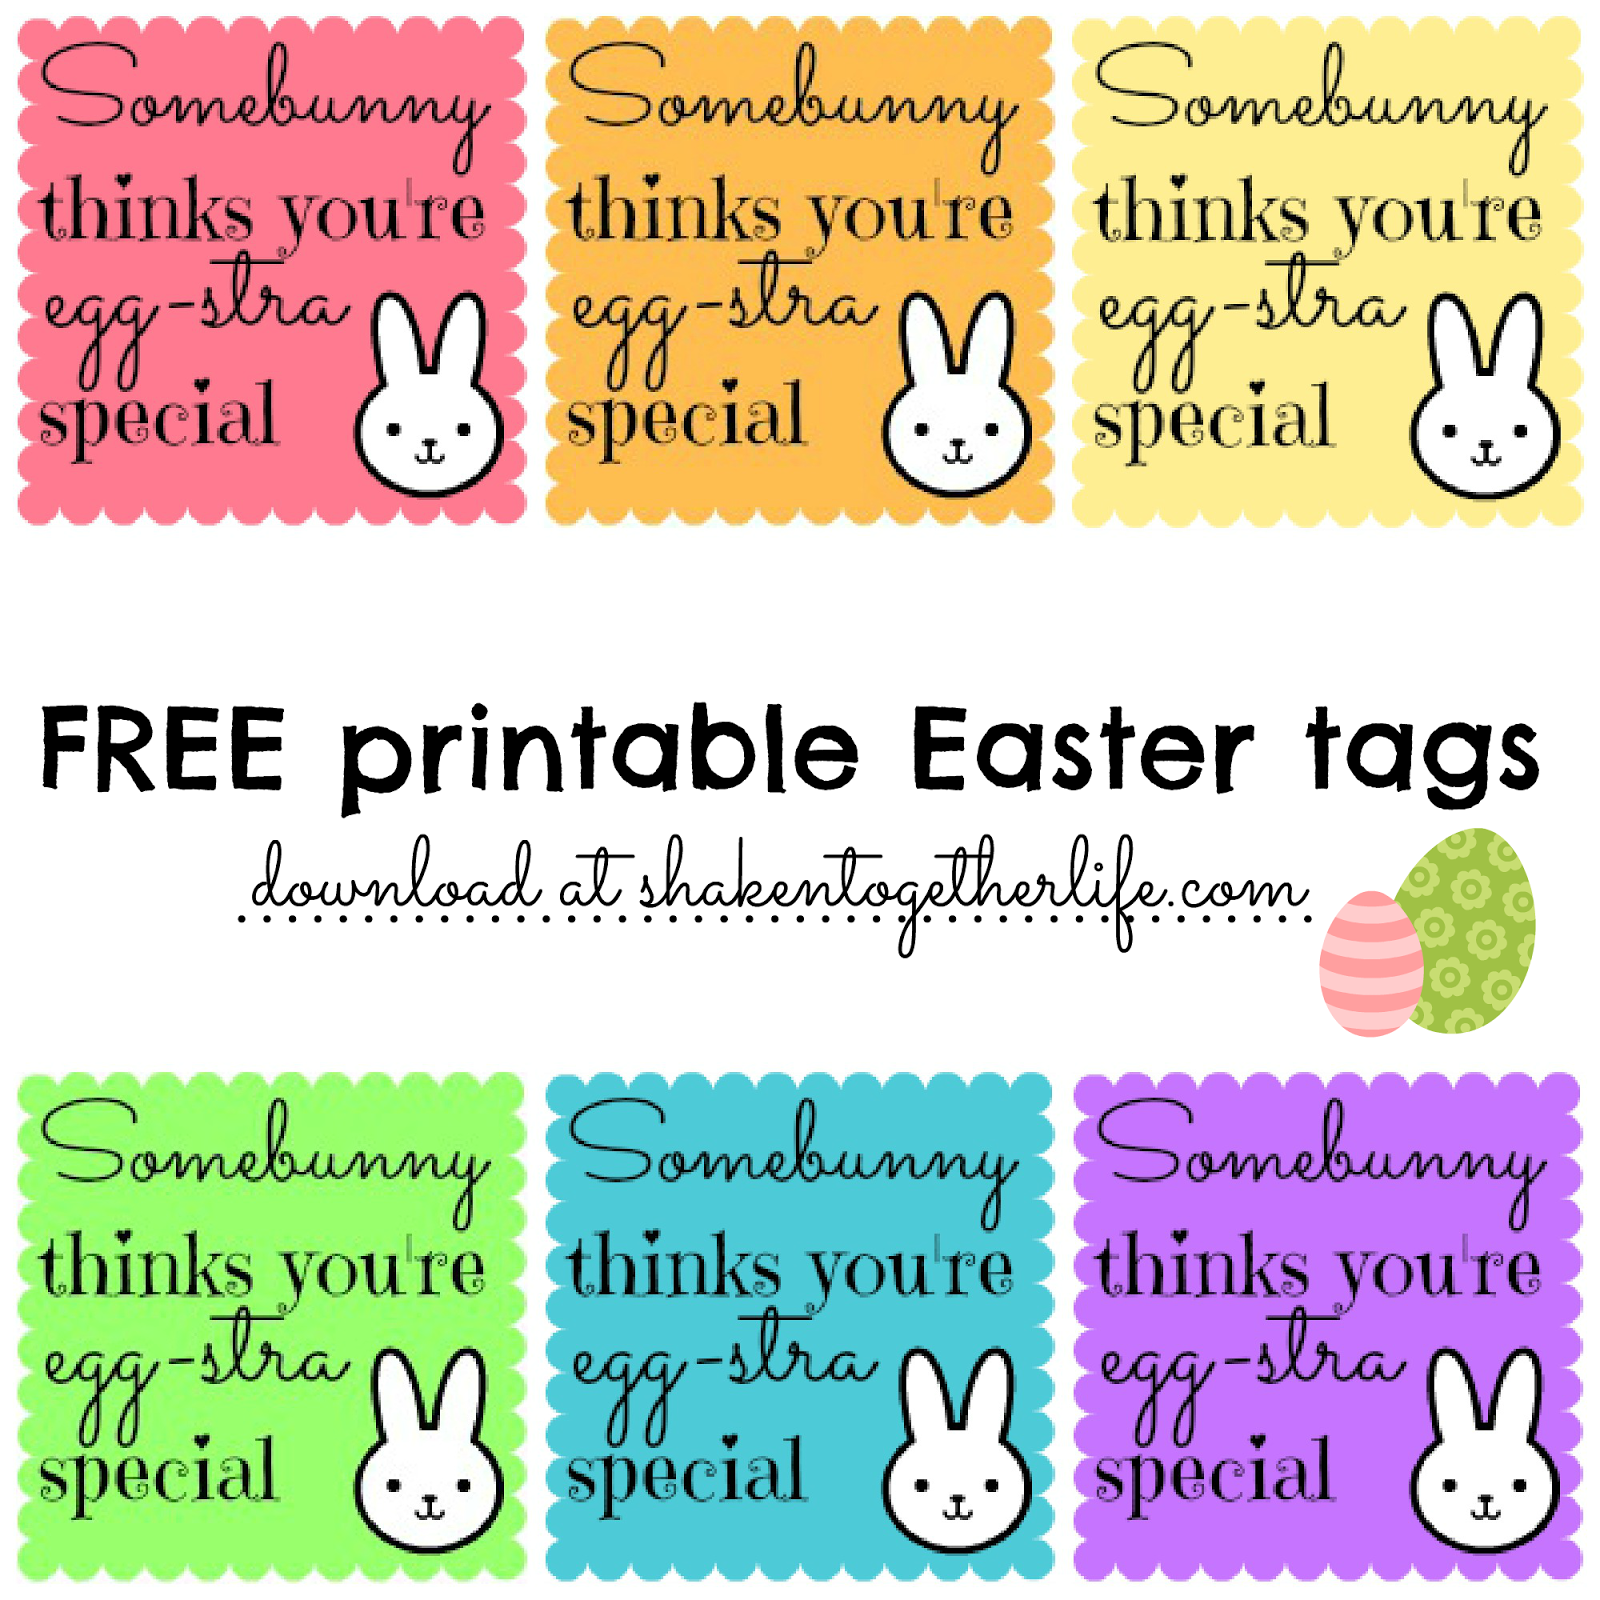 Bunny lip balm gifts for easter printable tags printable tags shaken together create this bunny lip balm gifts for easter free printable negle Gallery